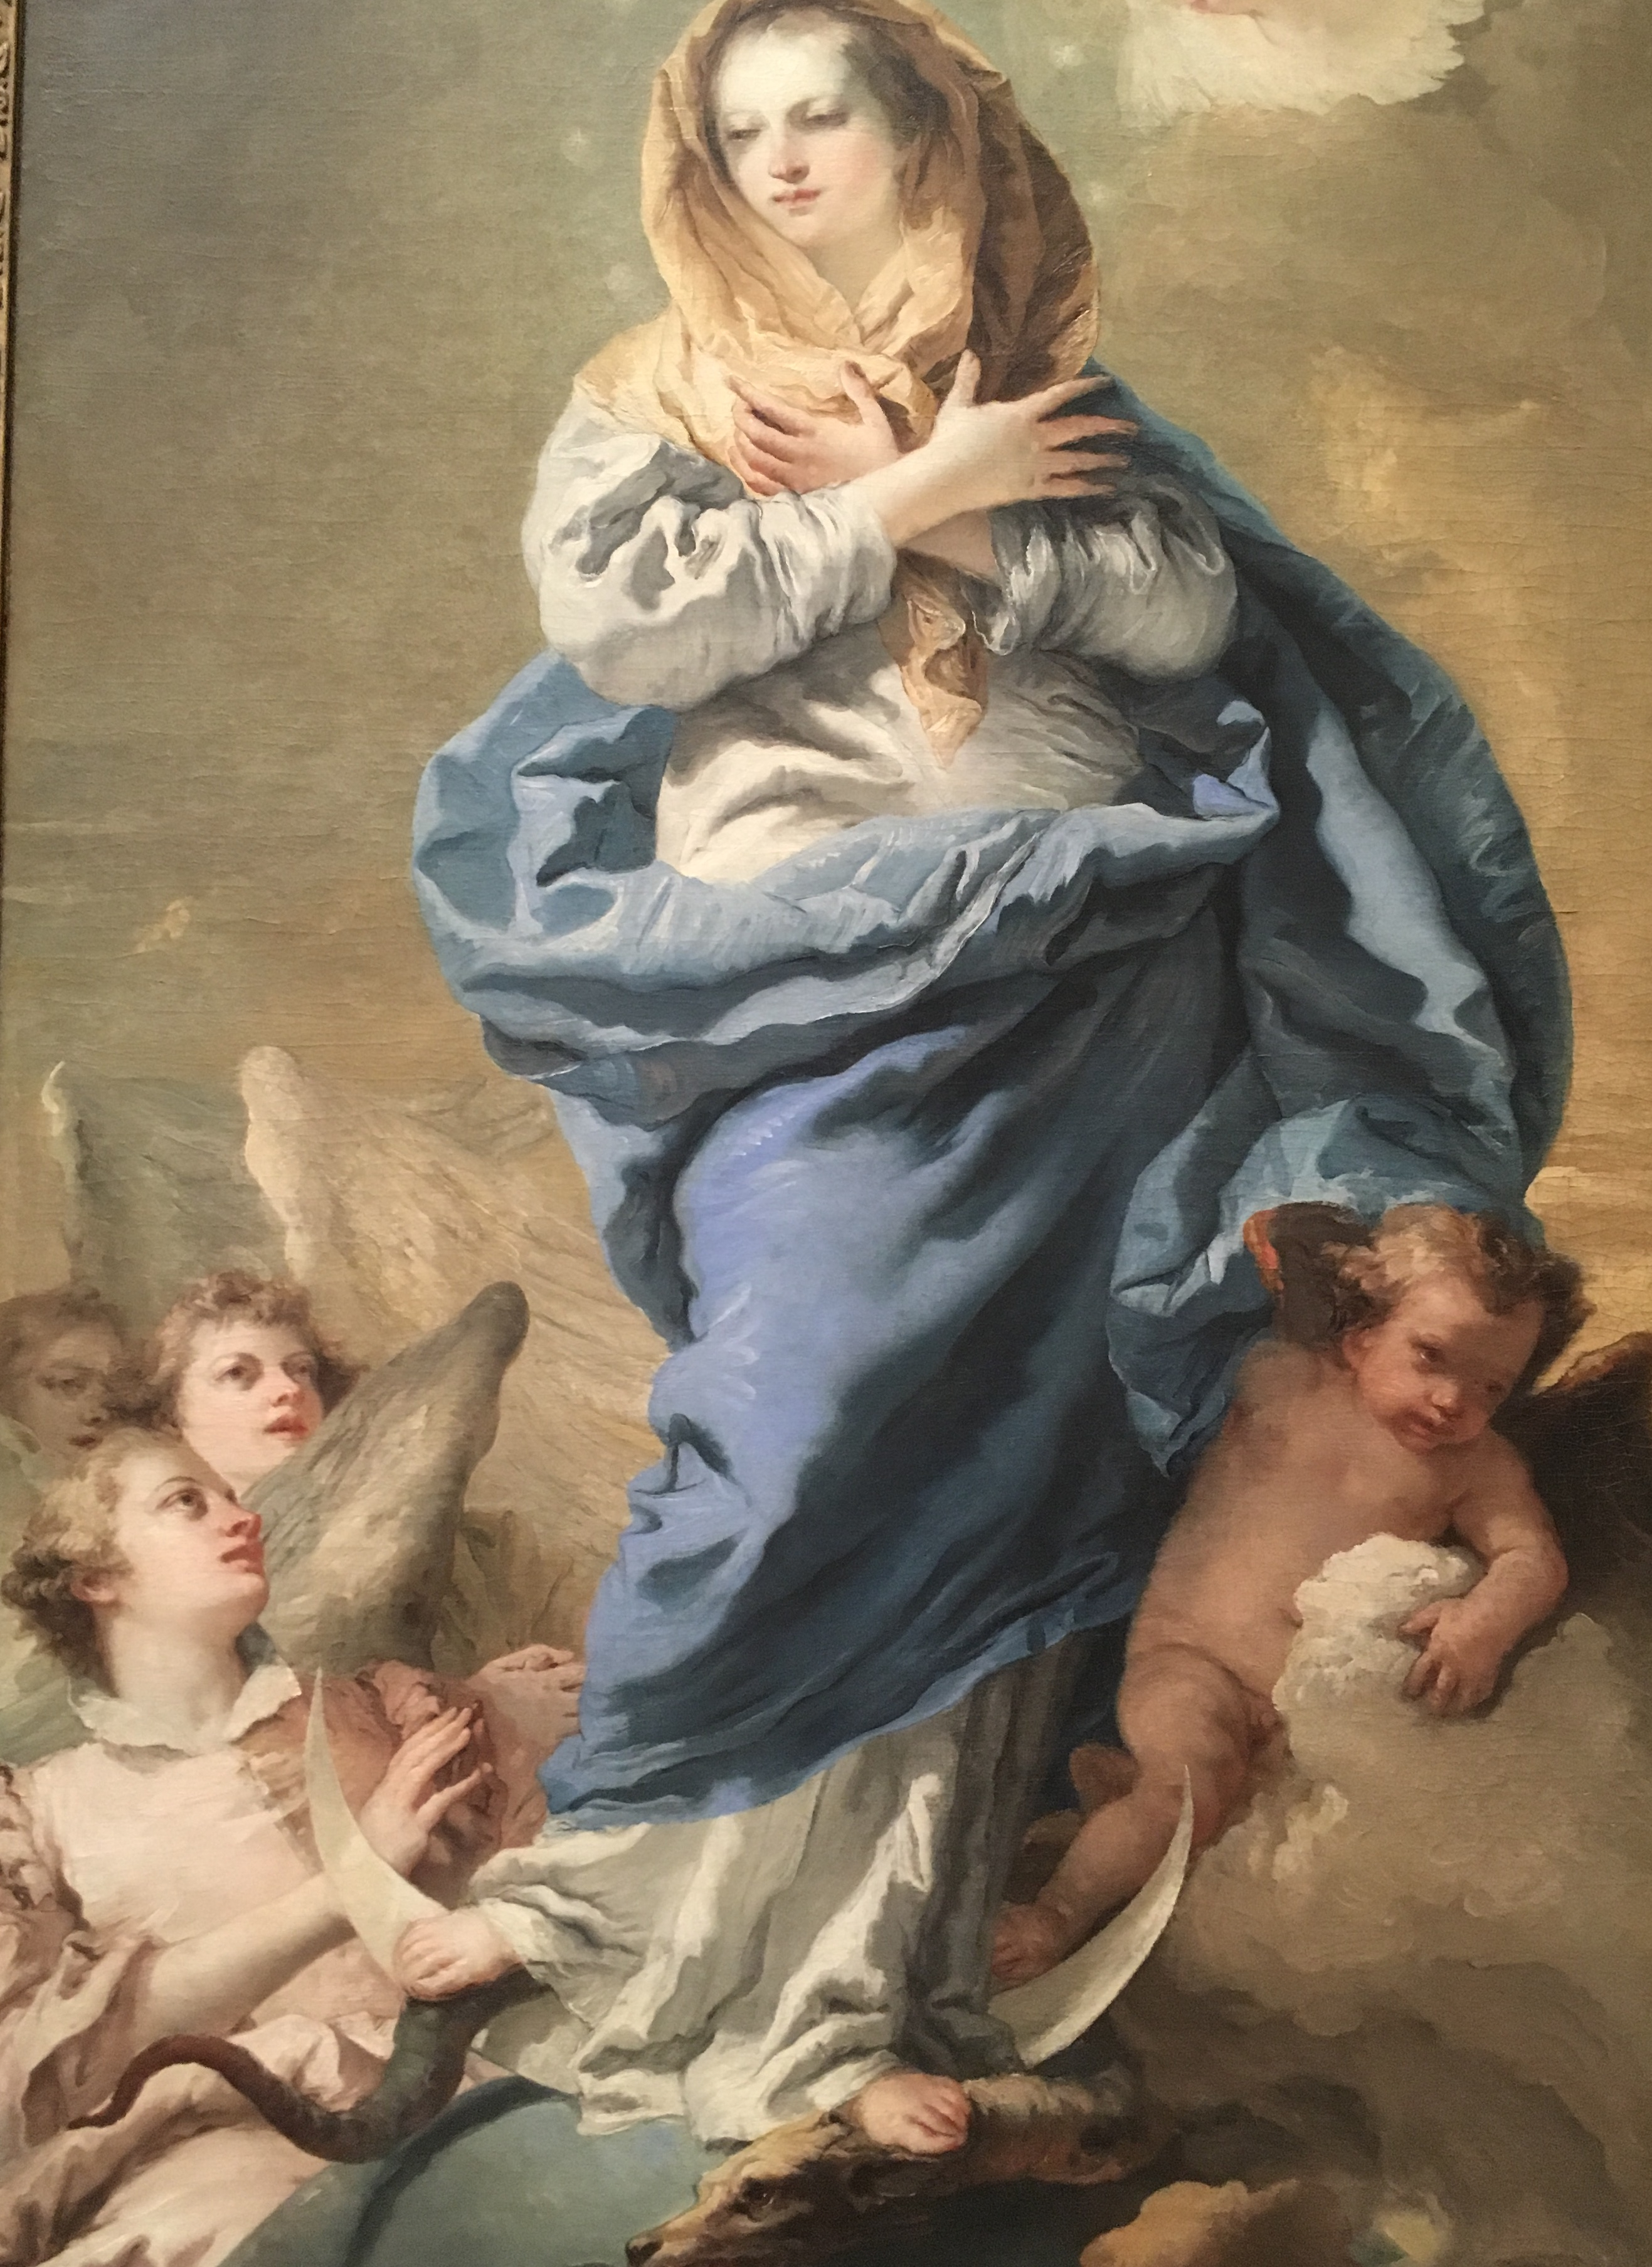 NGA-Giovanni Domenico Tiepolo, Immaculate Conception, 1775